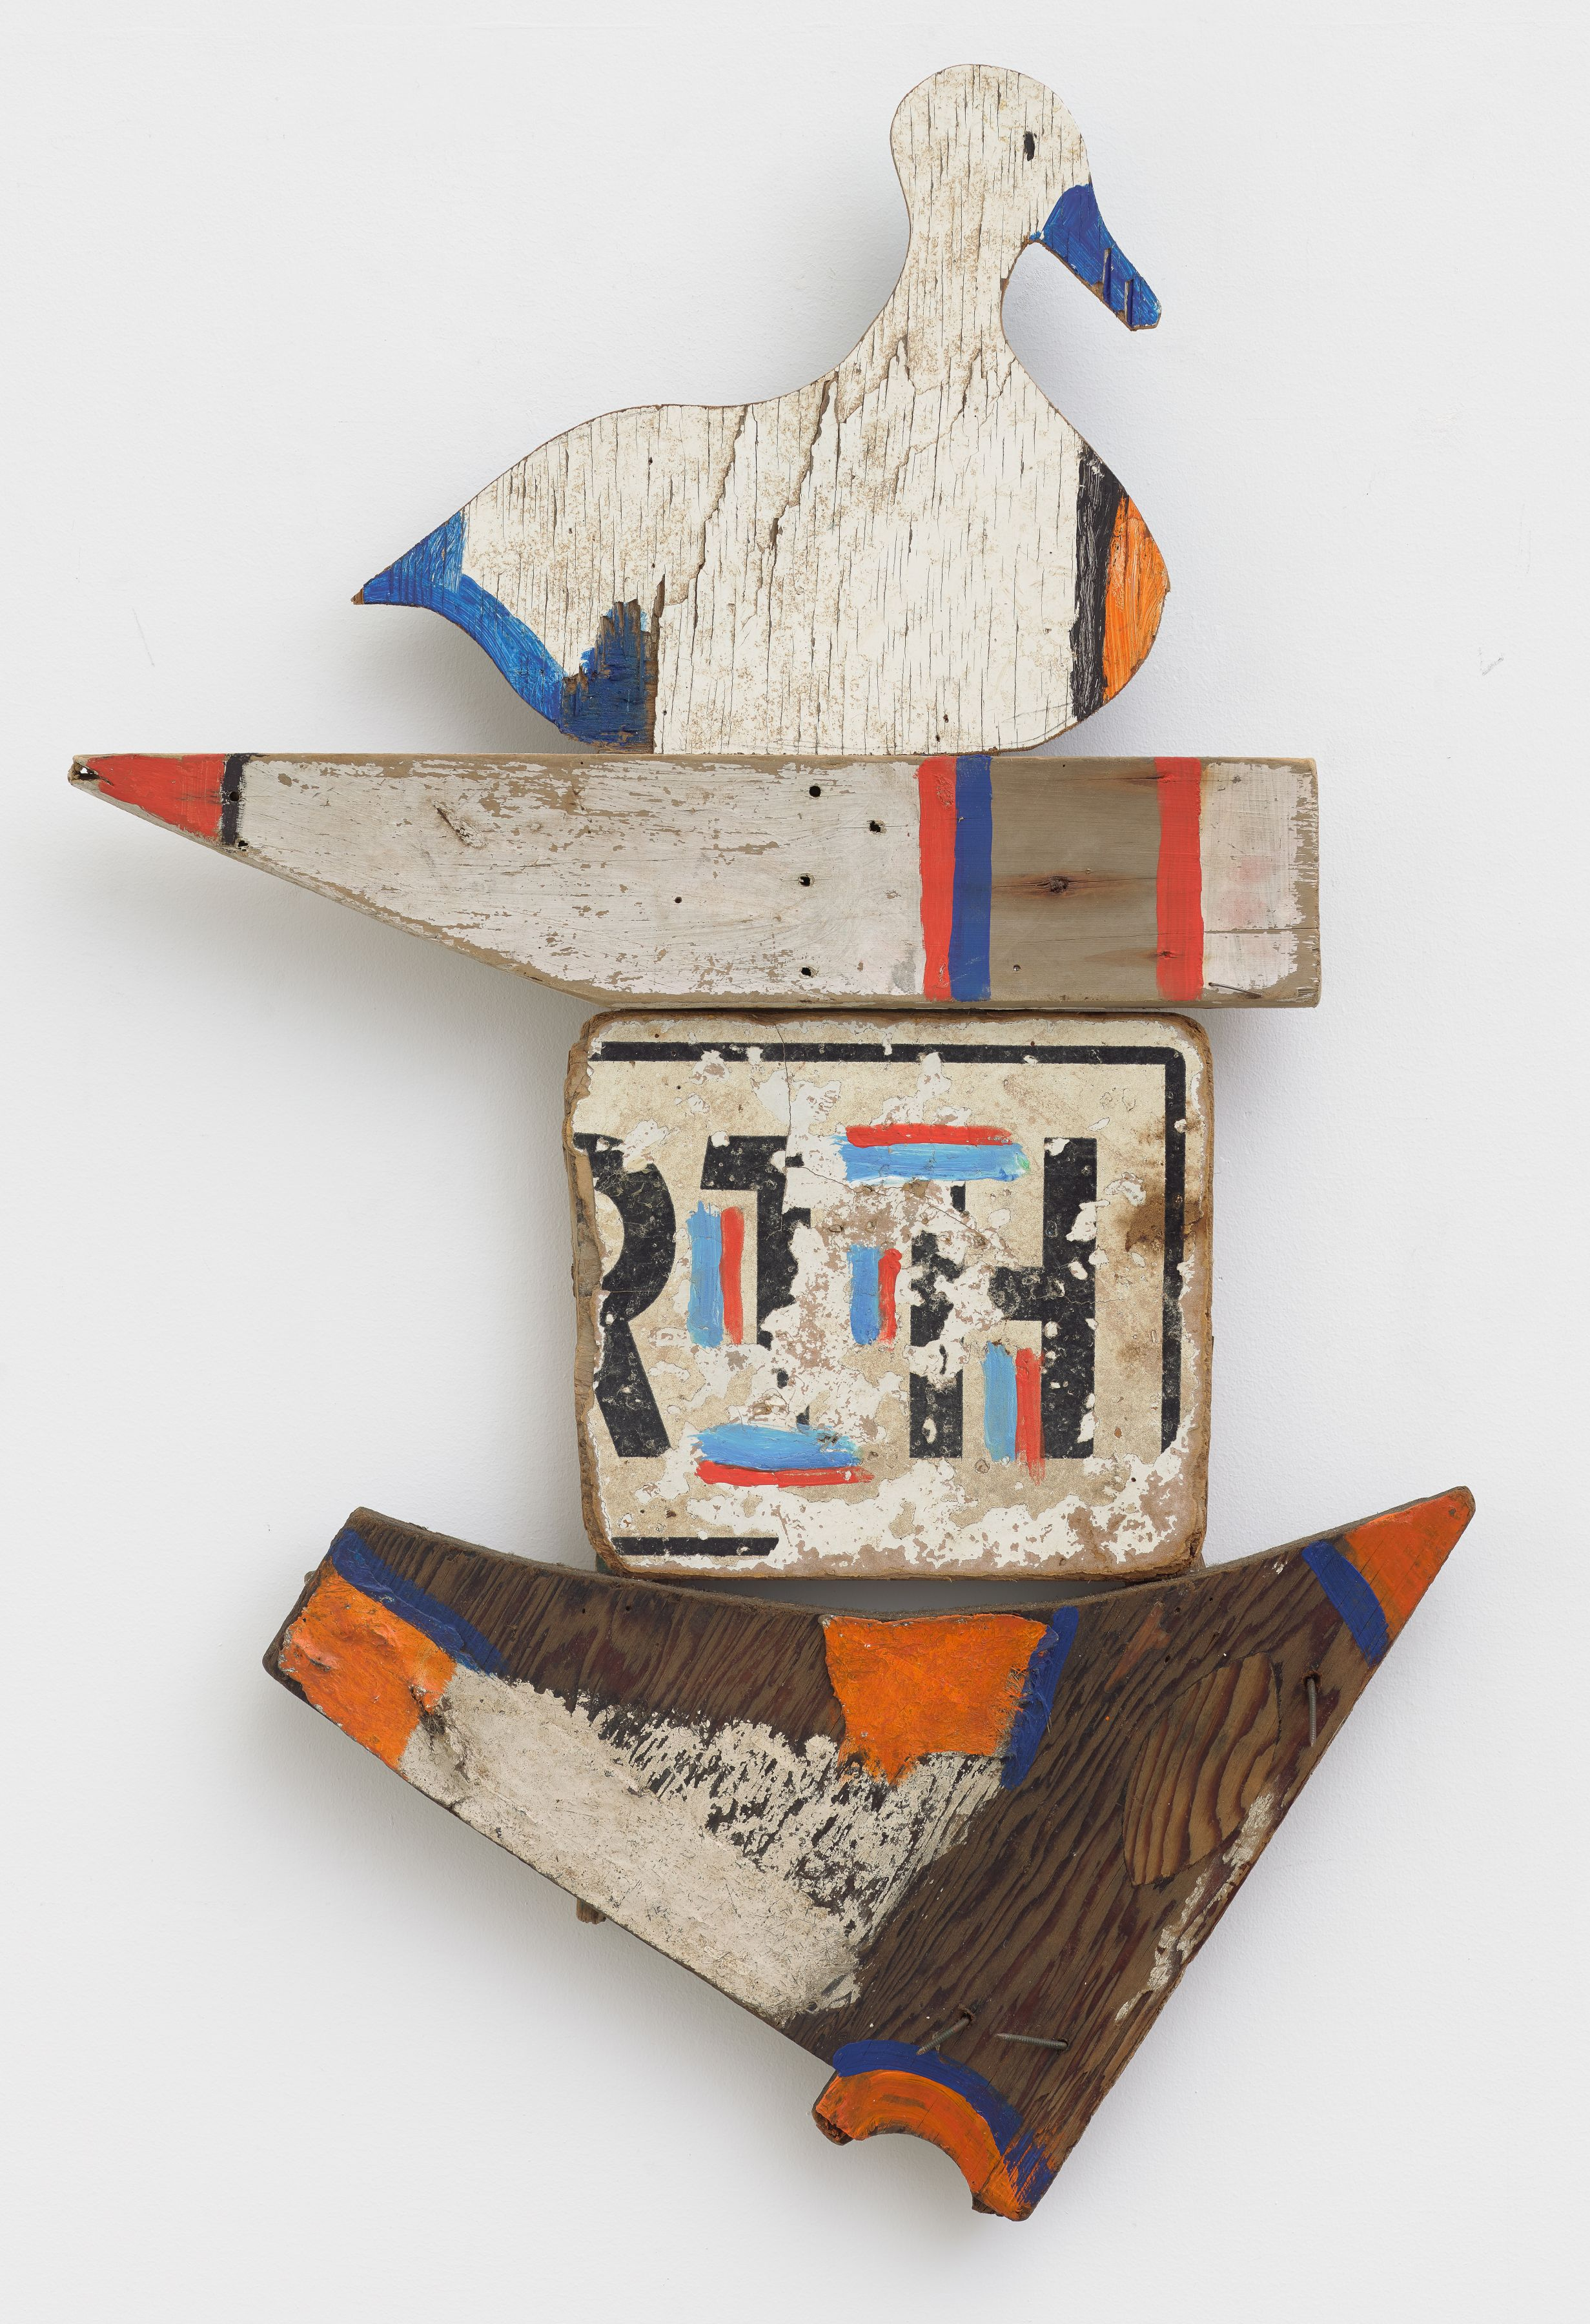 Flying Duck, 1981, Wood, paint, and hardware